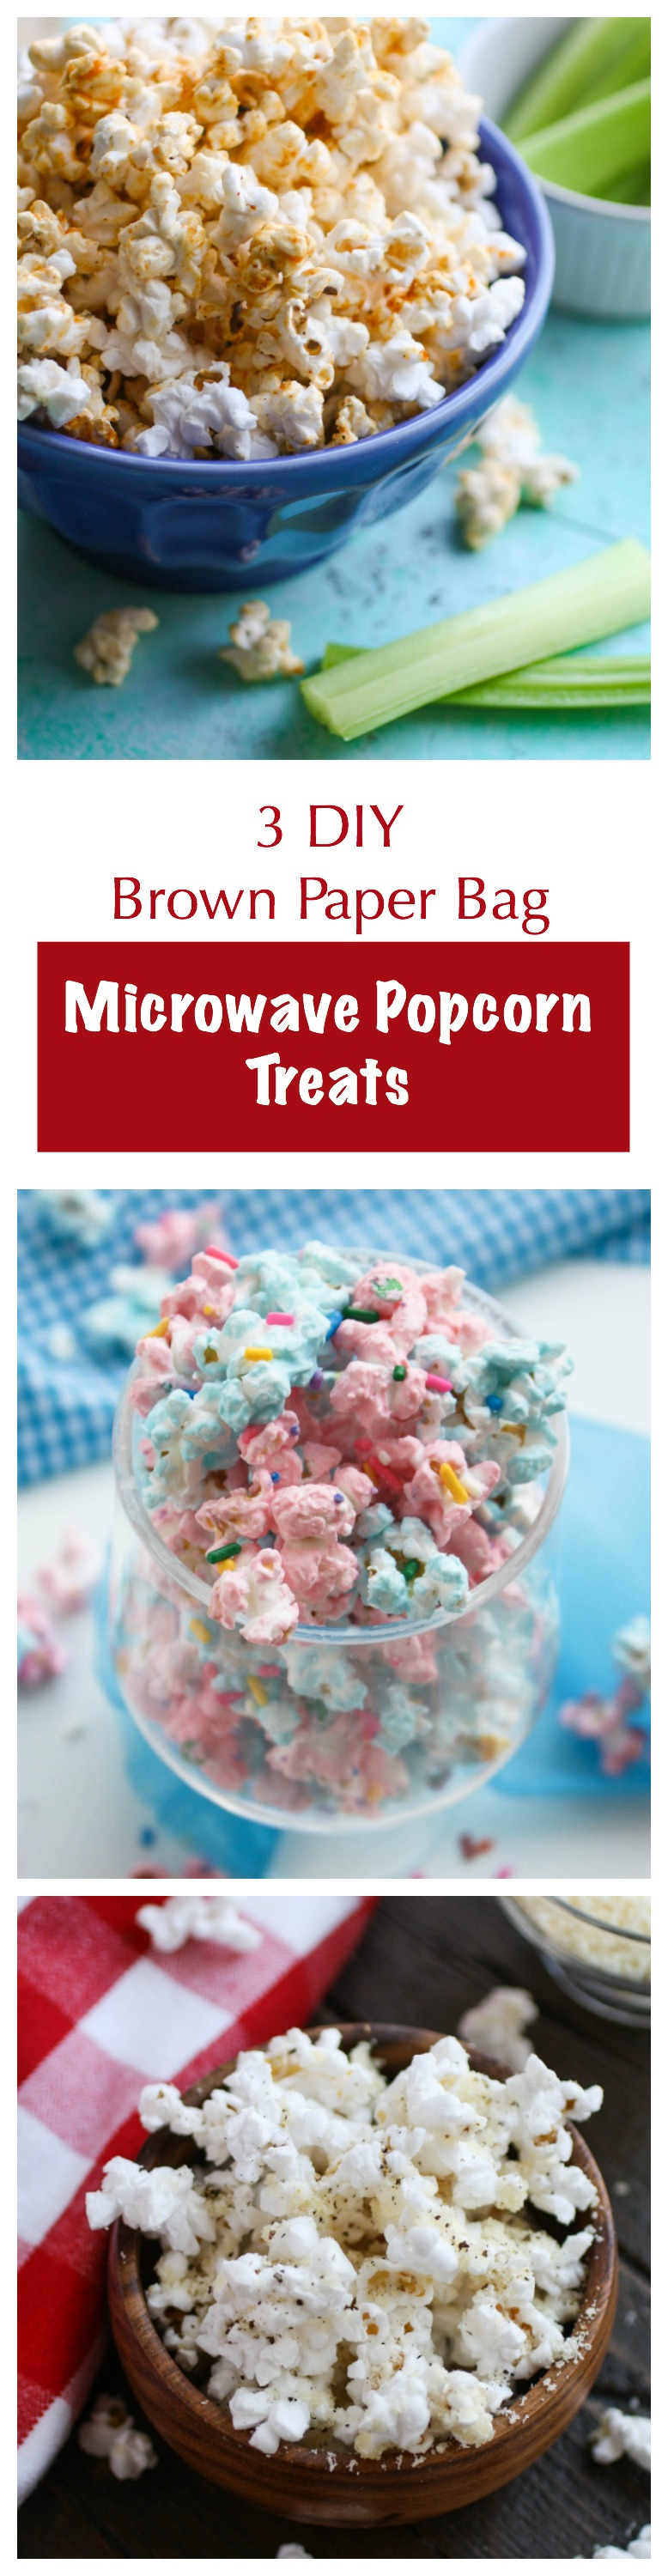 3 DIY Brown Paper Bag Microwave Popcorn Treats offer something for everyone! You'll love the options: sweet, salty, and spicy for fun sancking!